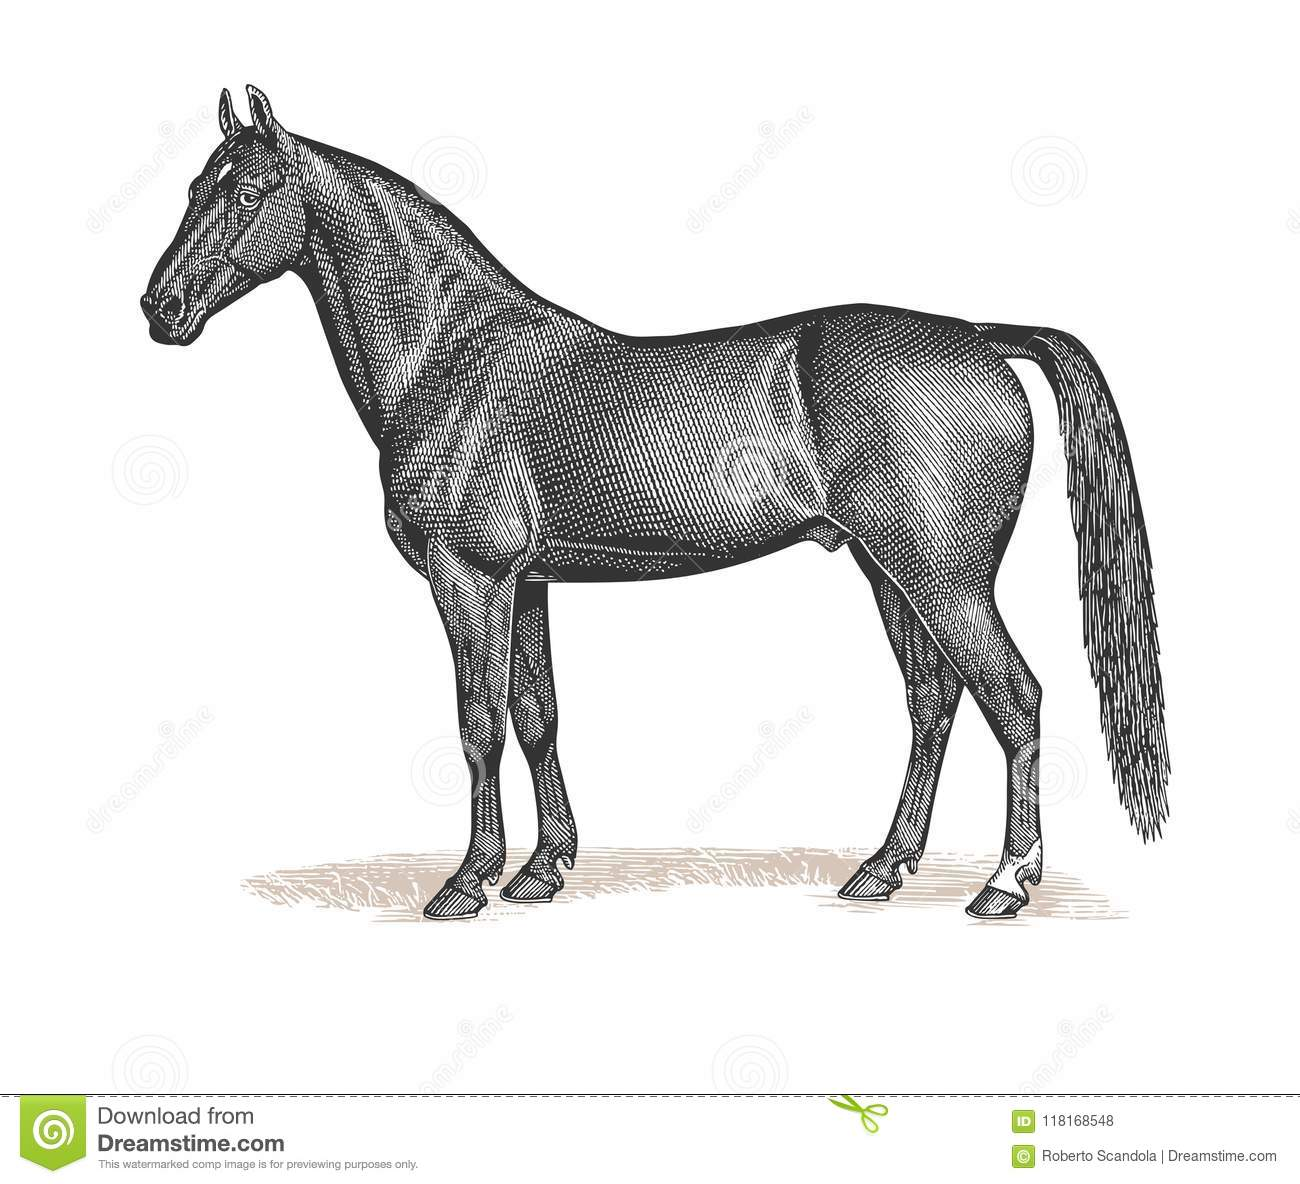 Horse Engraving Vintage Illustration Stock Vector Illustration Of Engraving Isolated 118168548